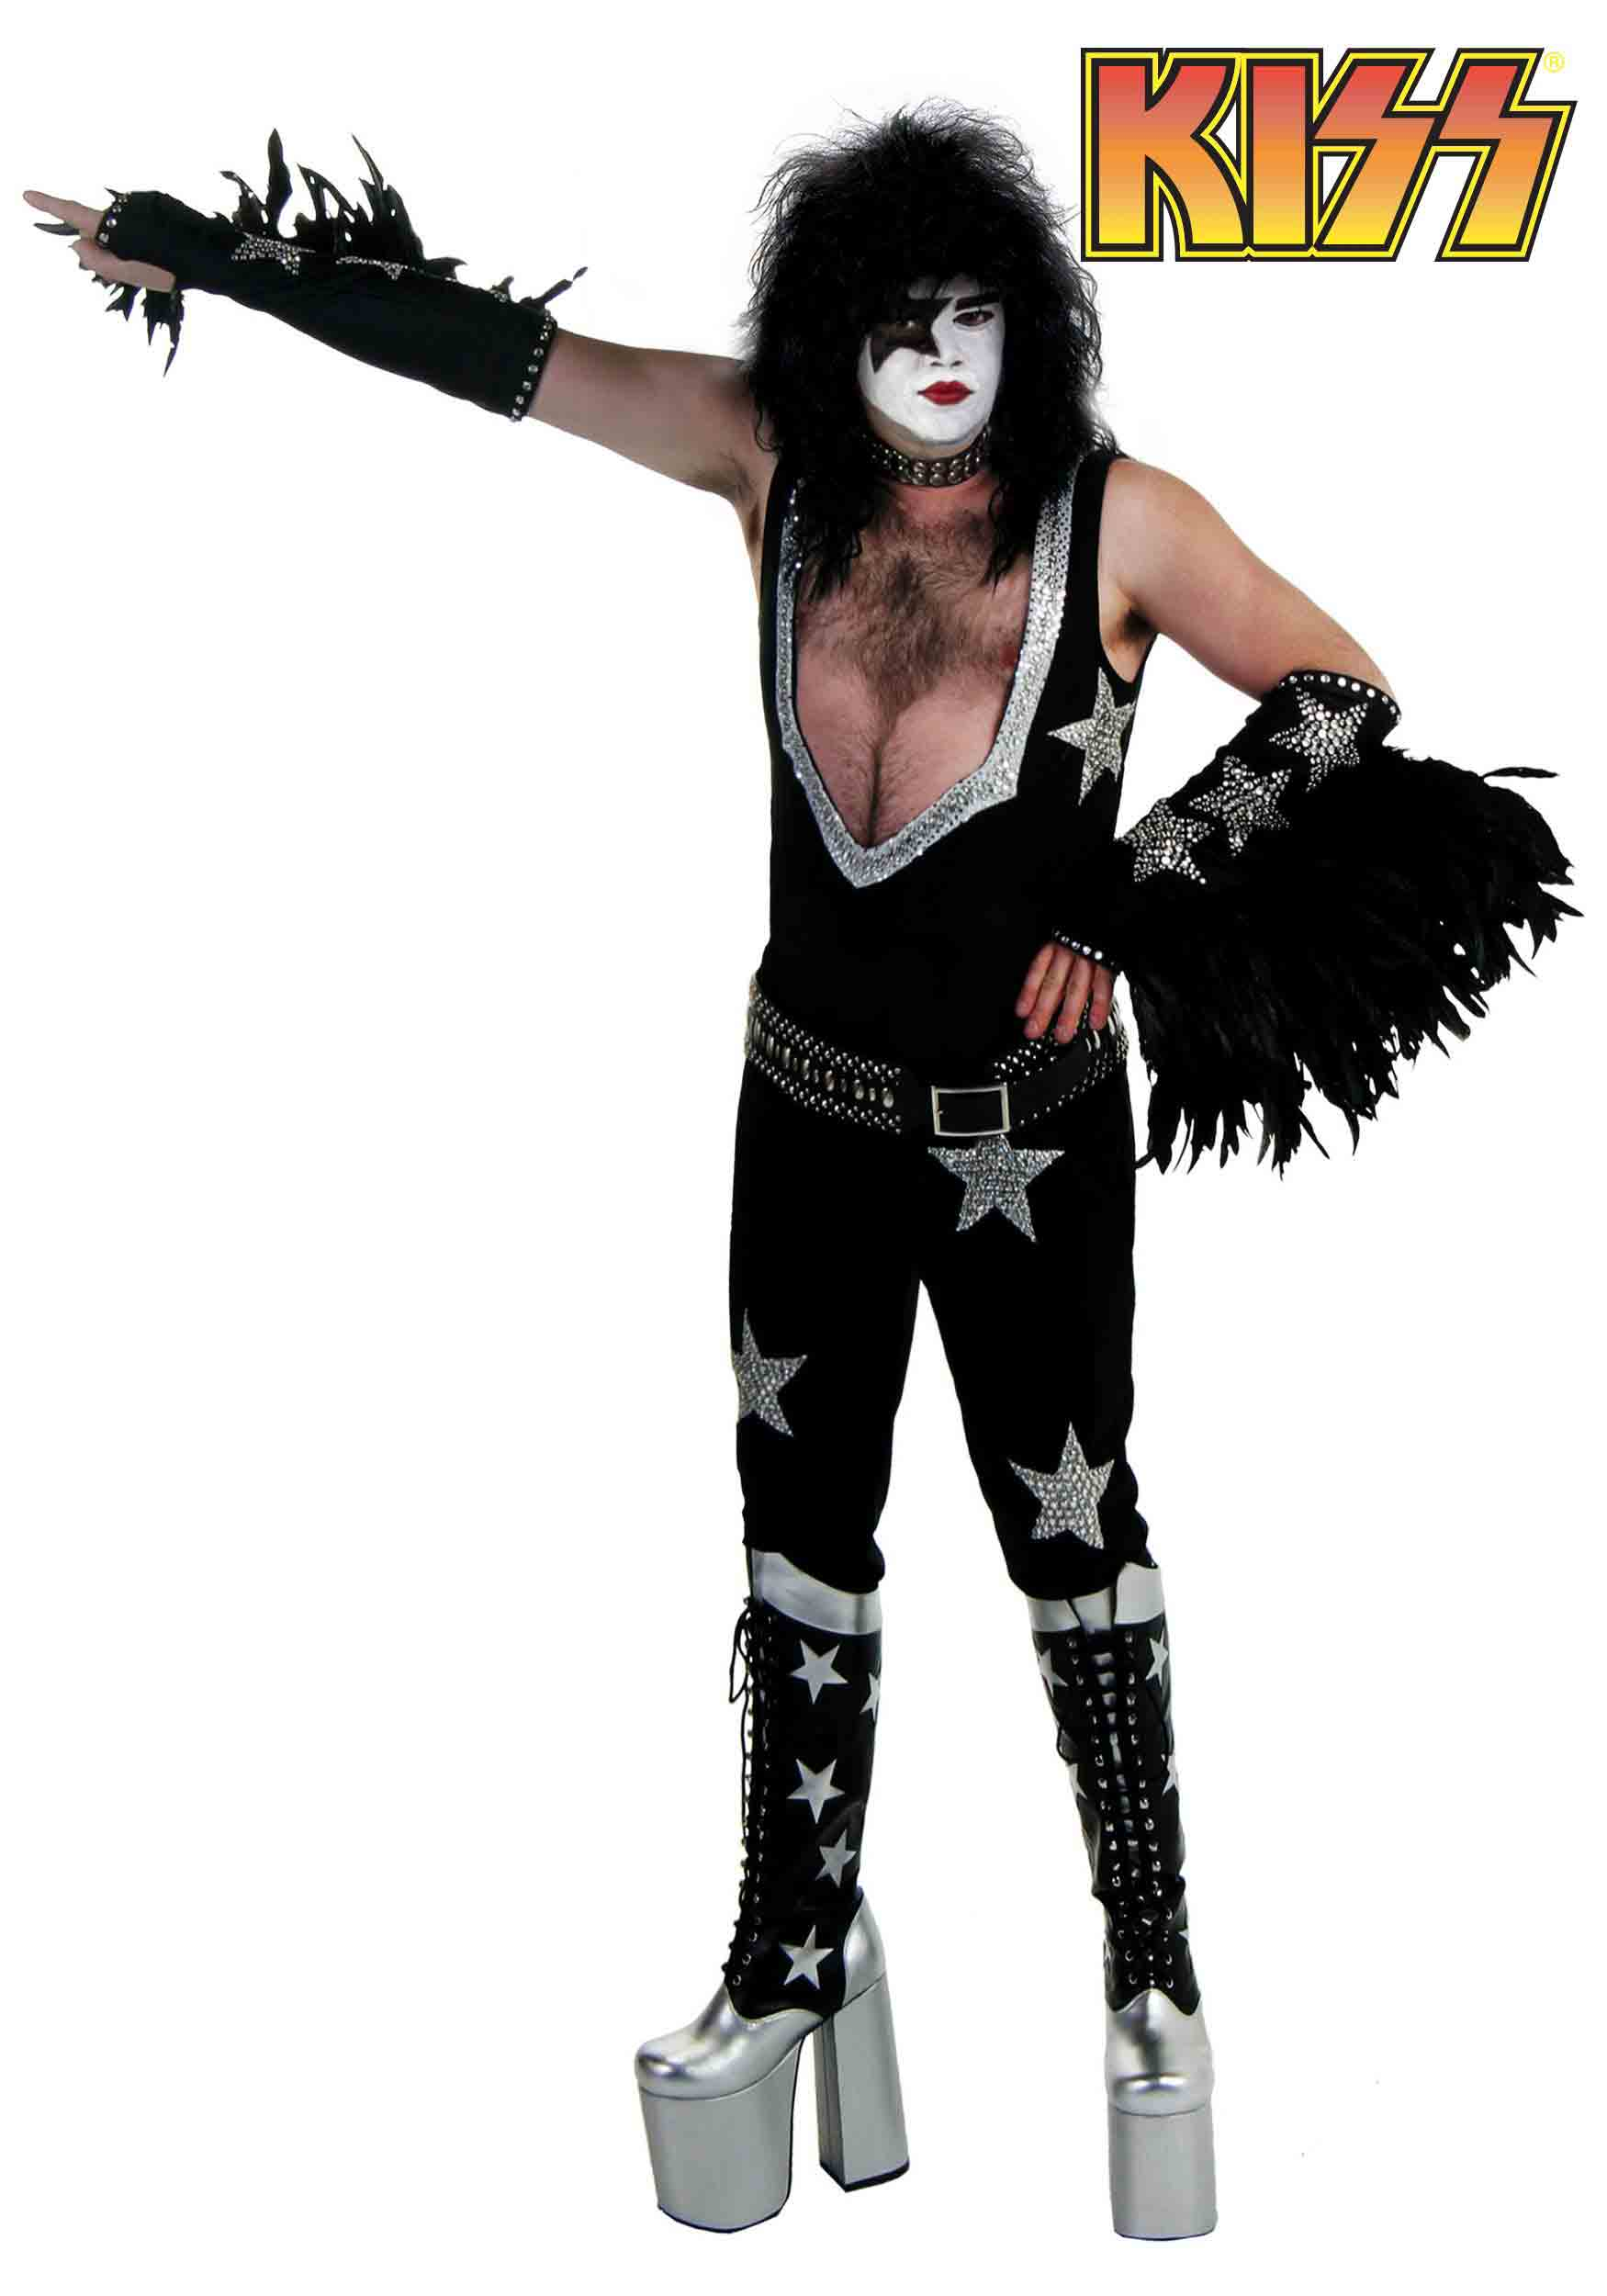 Authentic Paul Stanley Long Hair Men Costume Ideas for Halloween